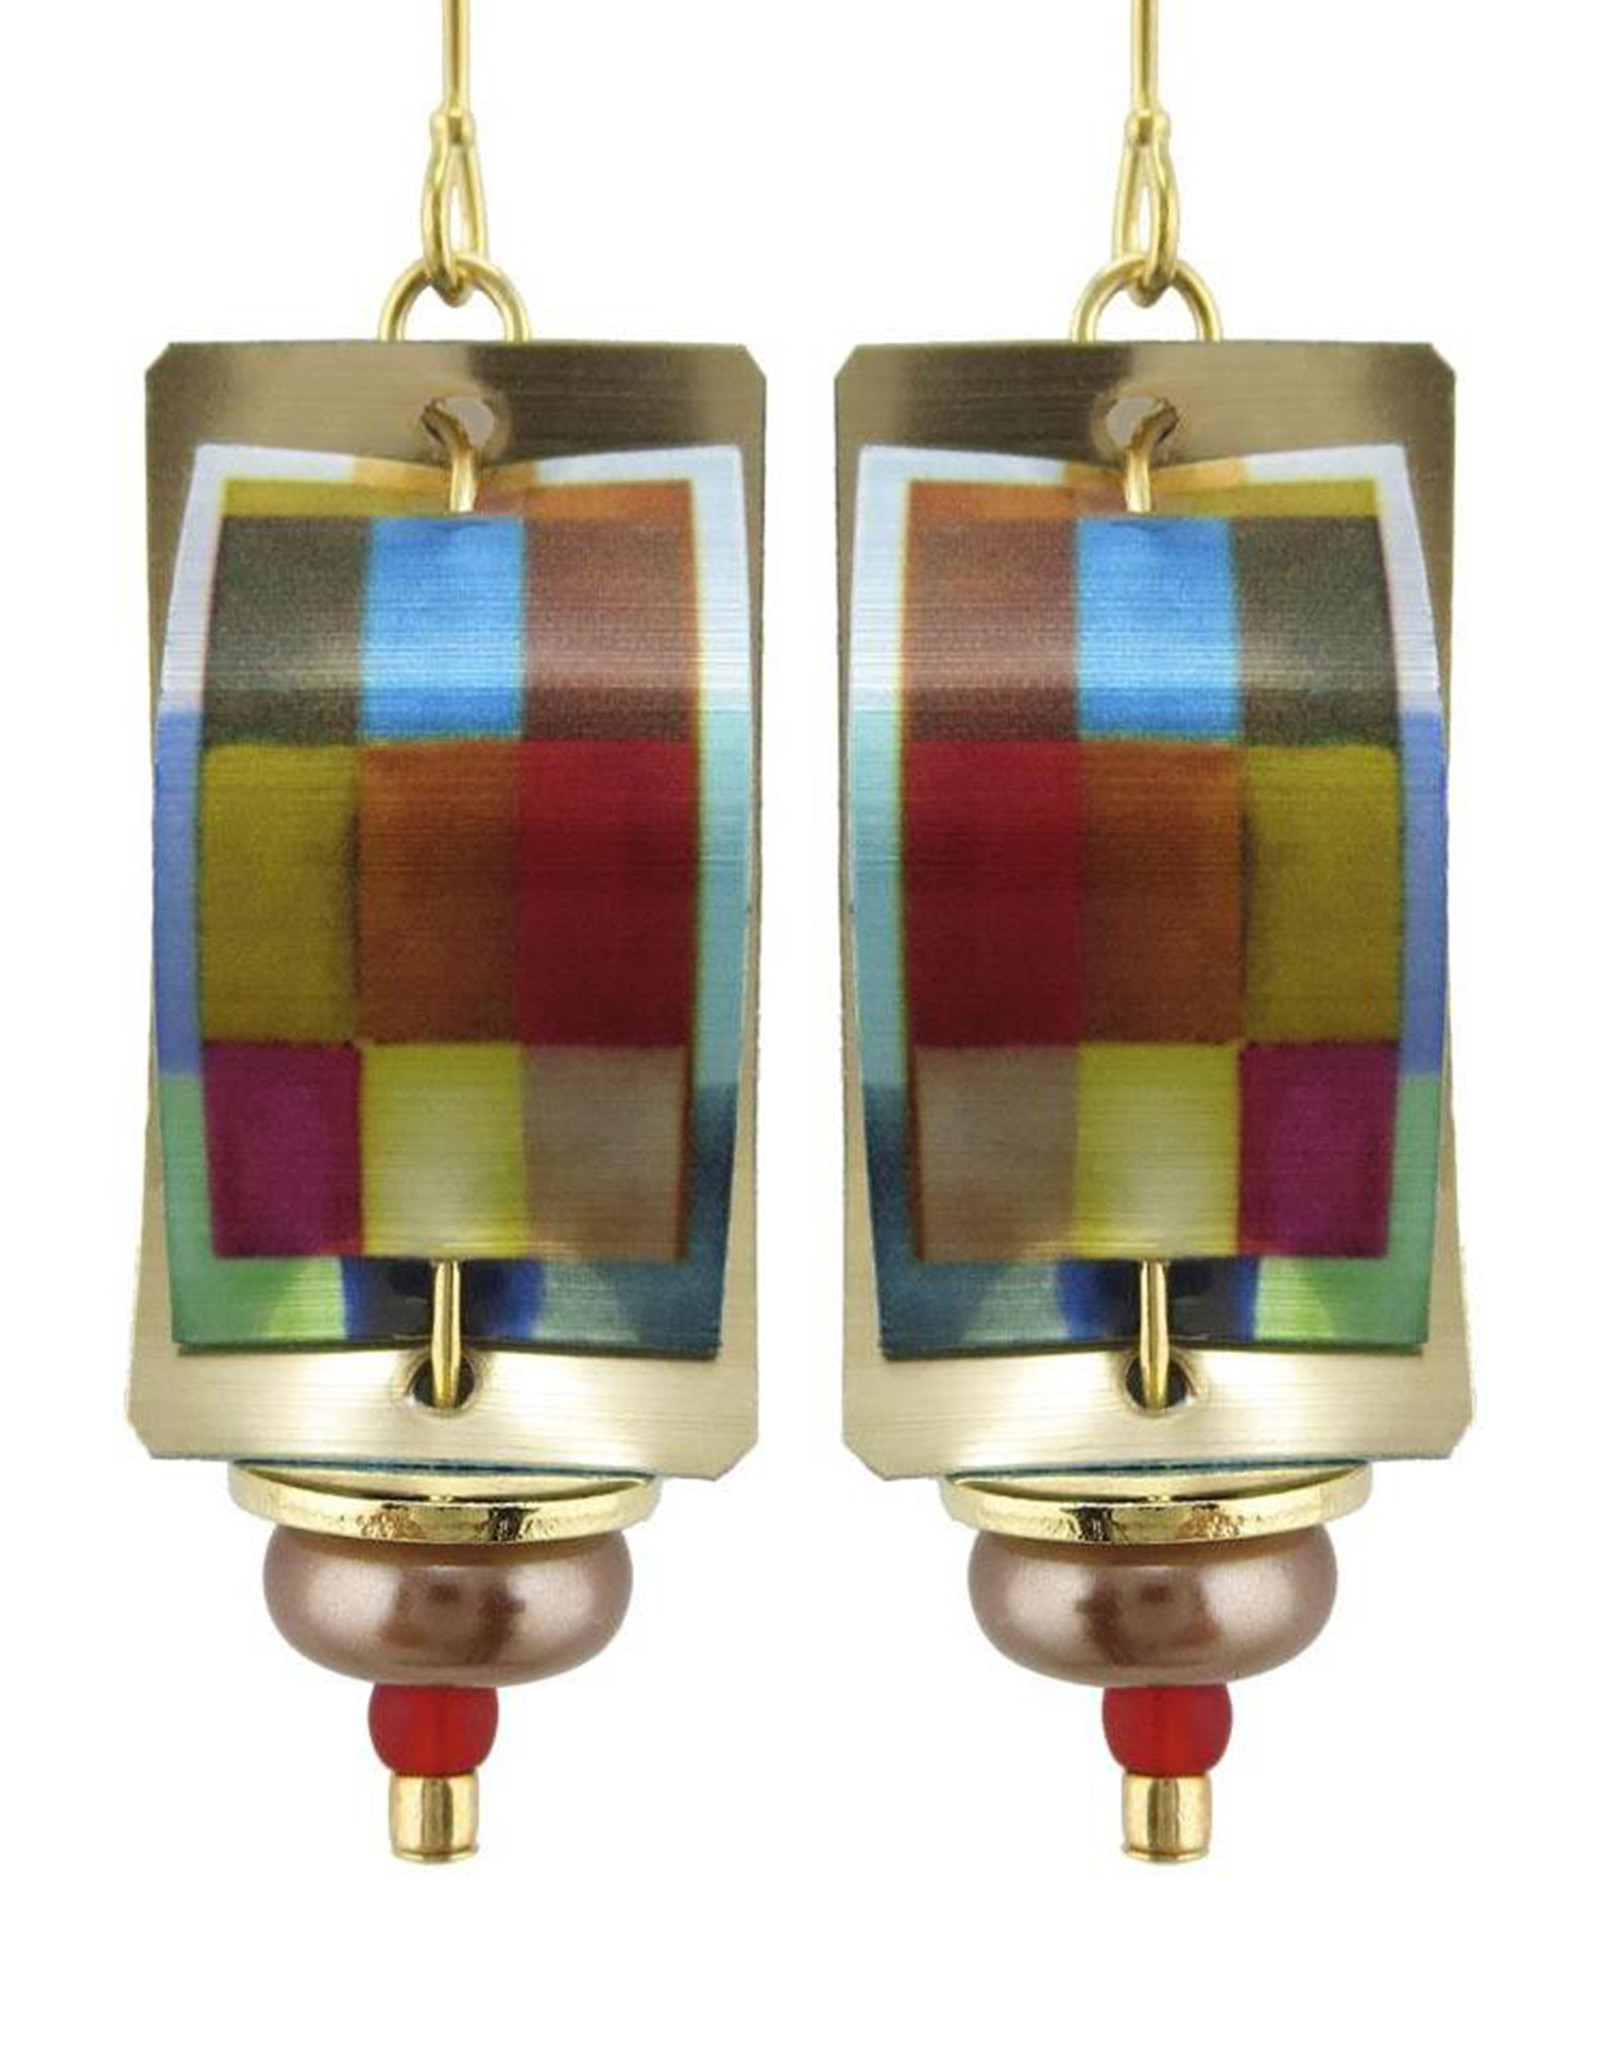 SINGERMAN & POST COLORFUL RECTANGLES EARRINGS